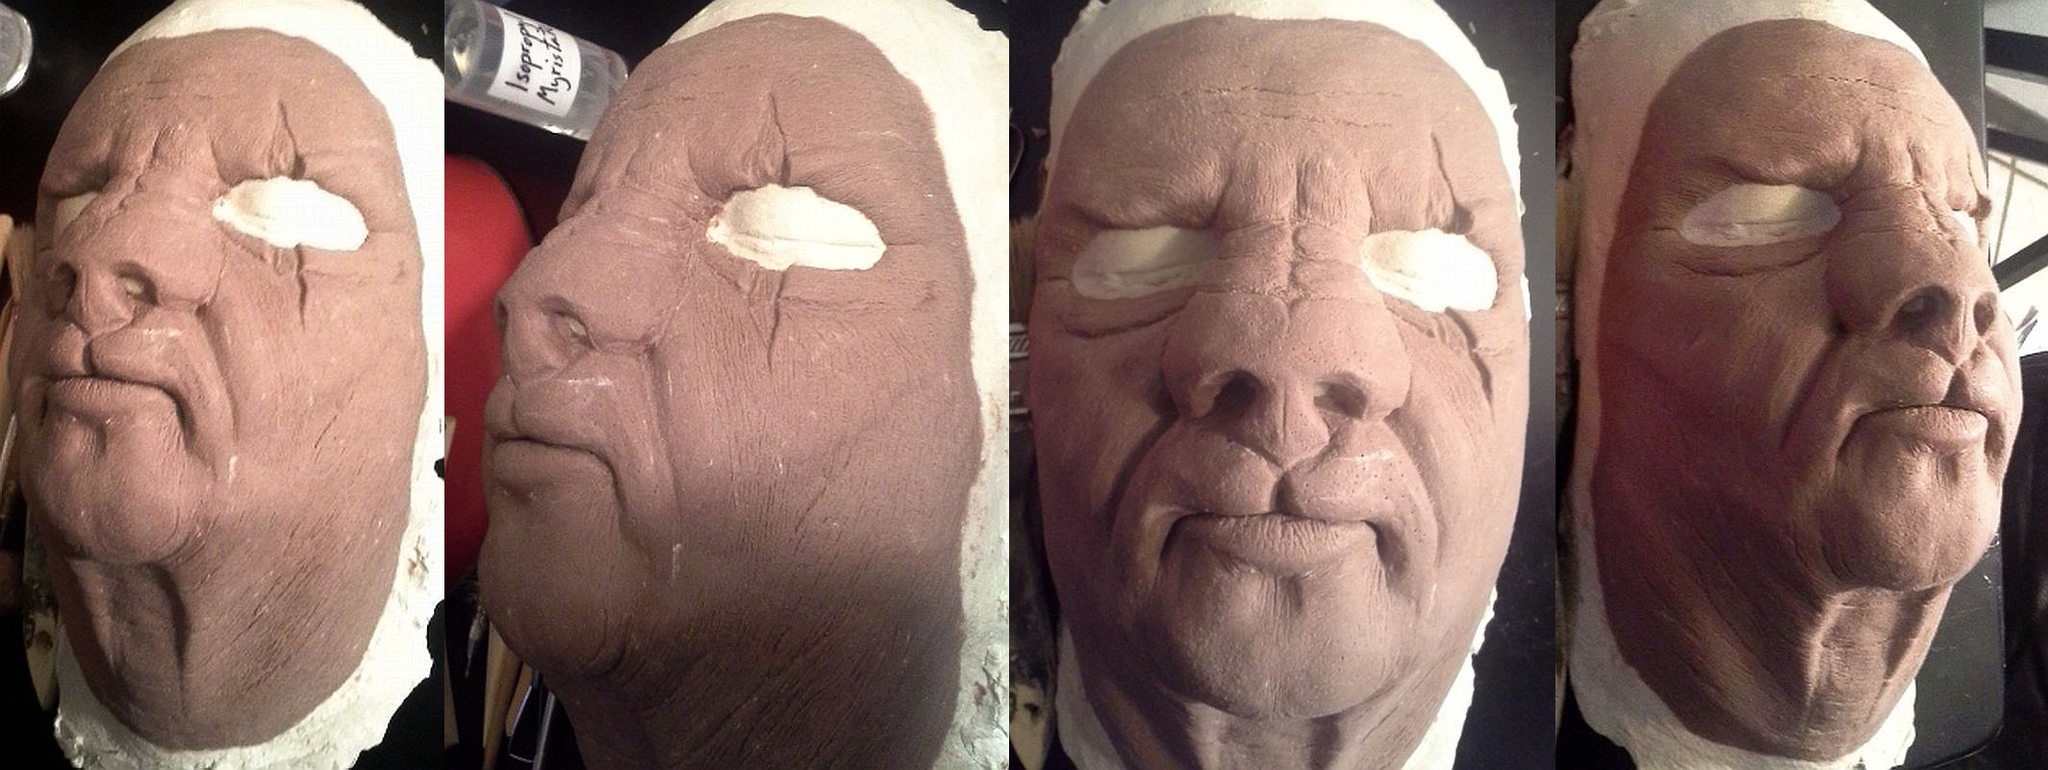 Animalistic face sculpt for Dick Smith's Makeup Course